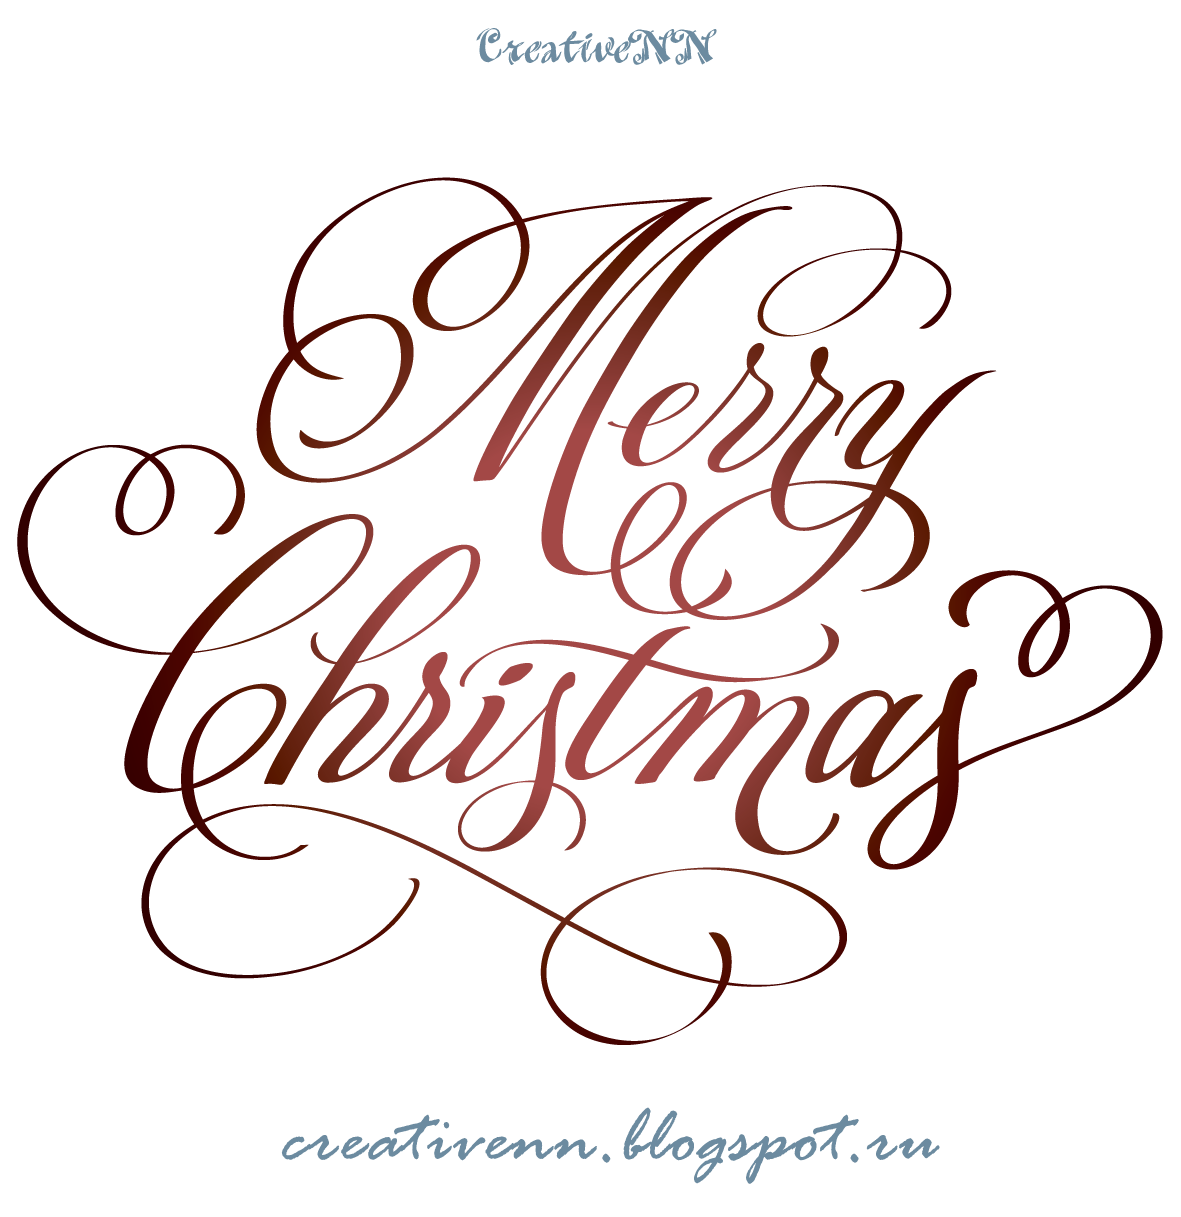 Free digital stamps. Word Art. Merry Christmas! Happy New Year! Labels ...